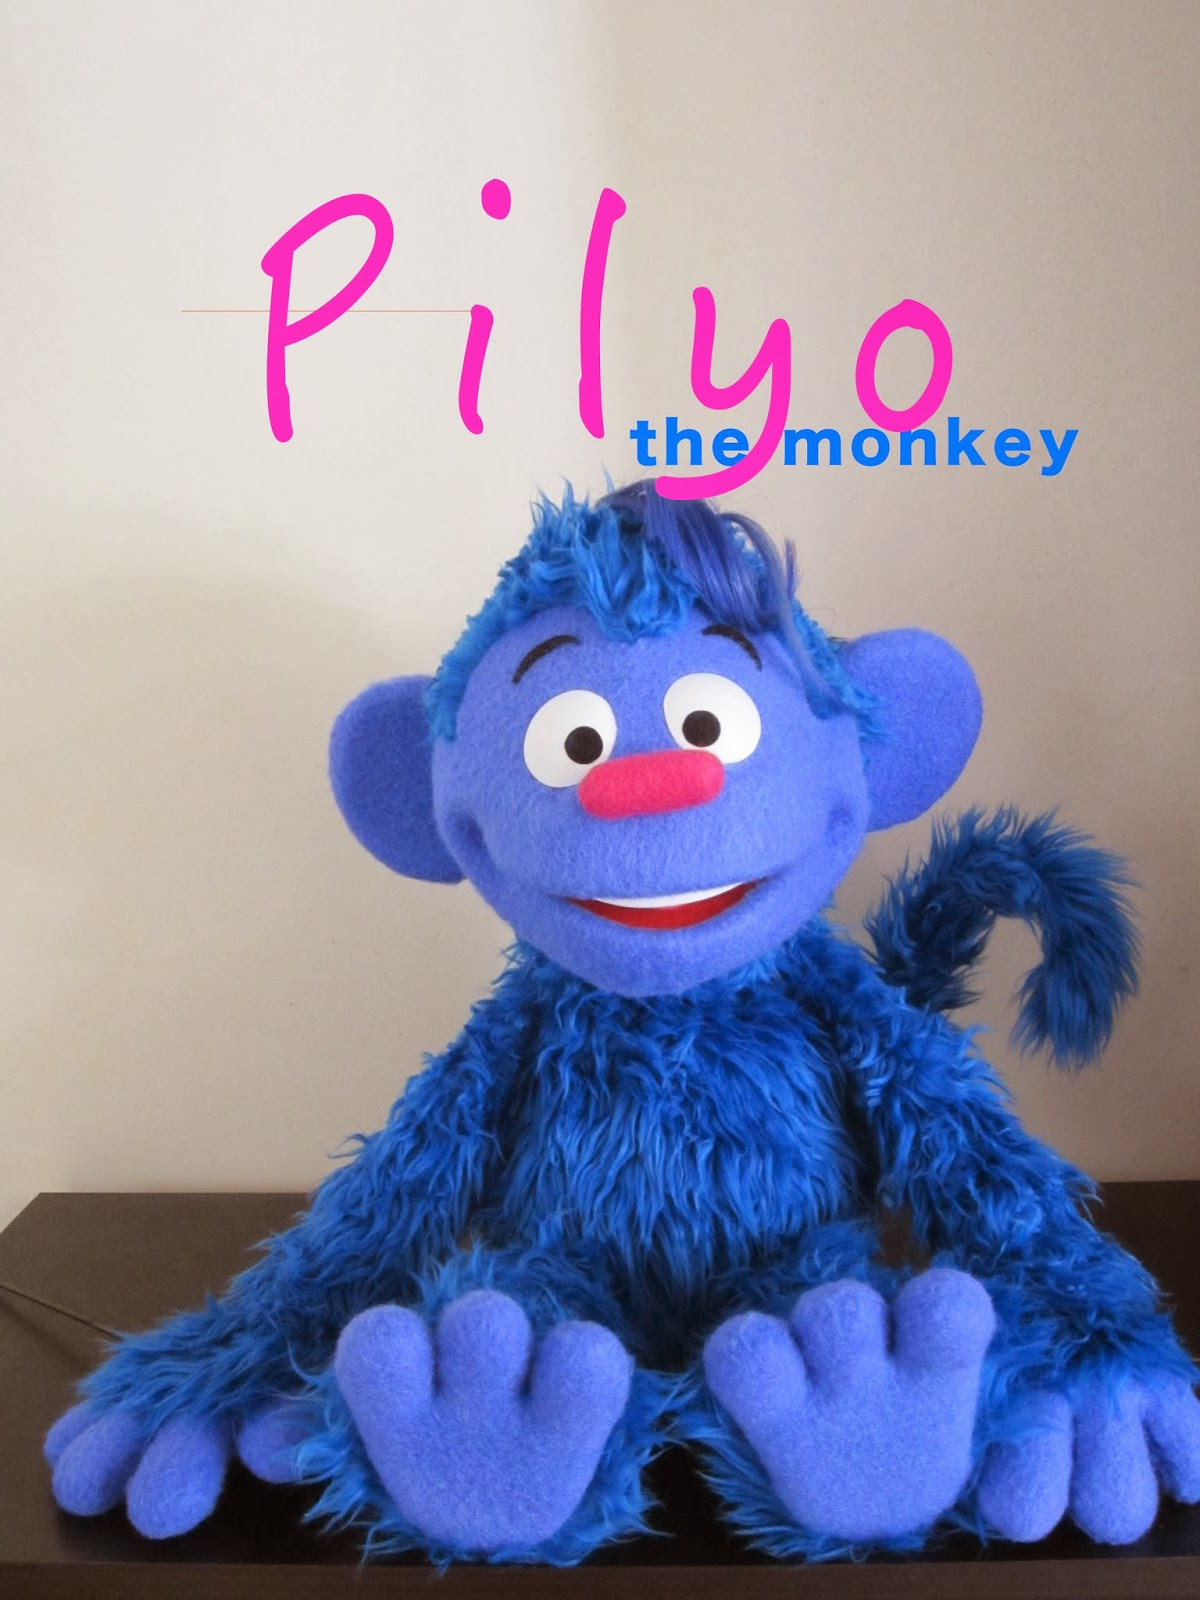 jarrod boutcher puppets pilyo the monkey helping relief in